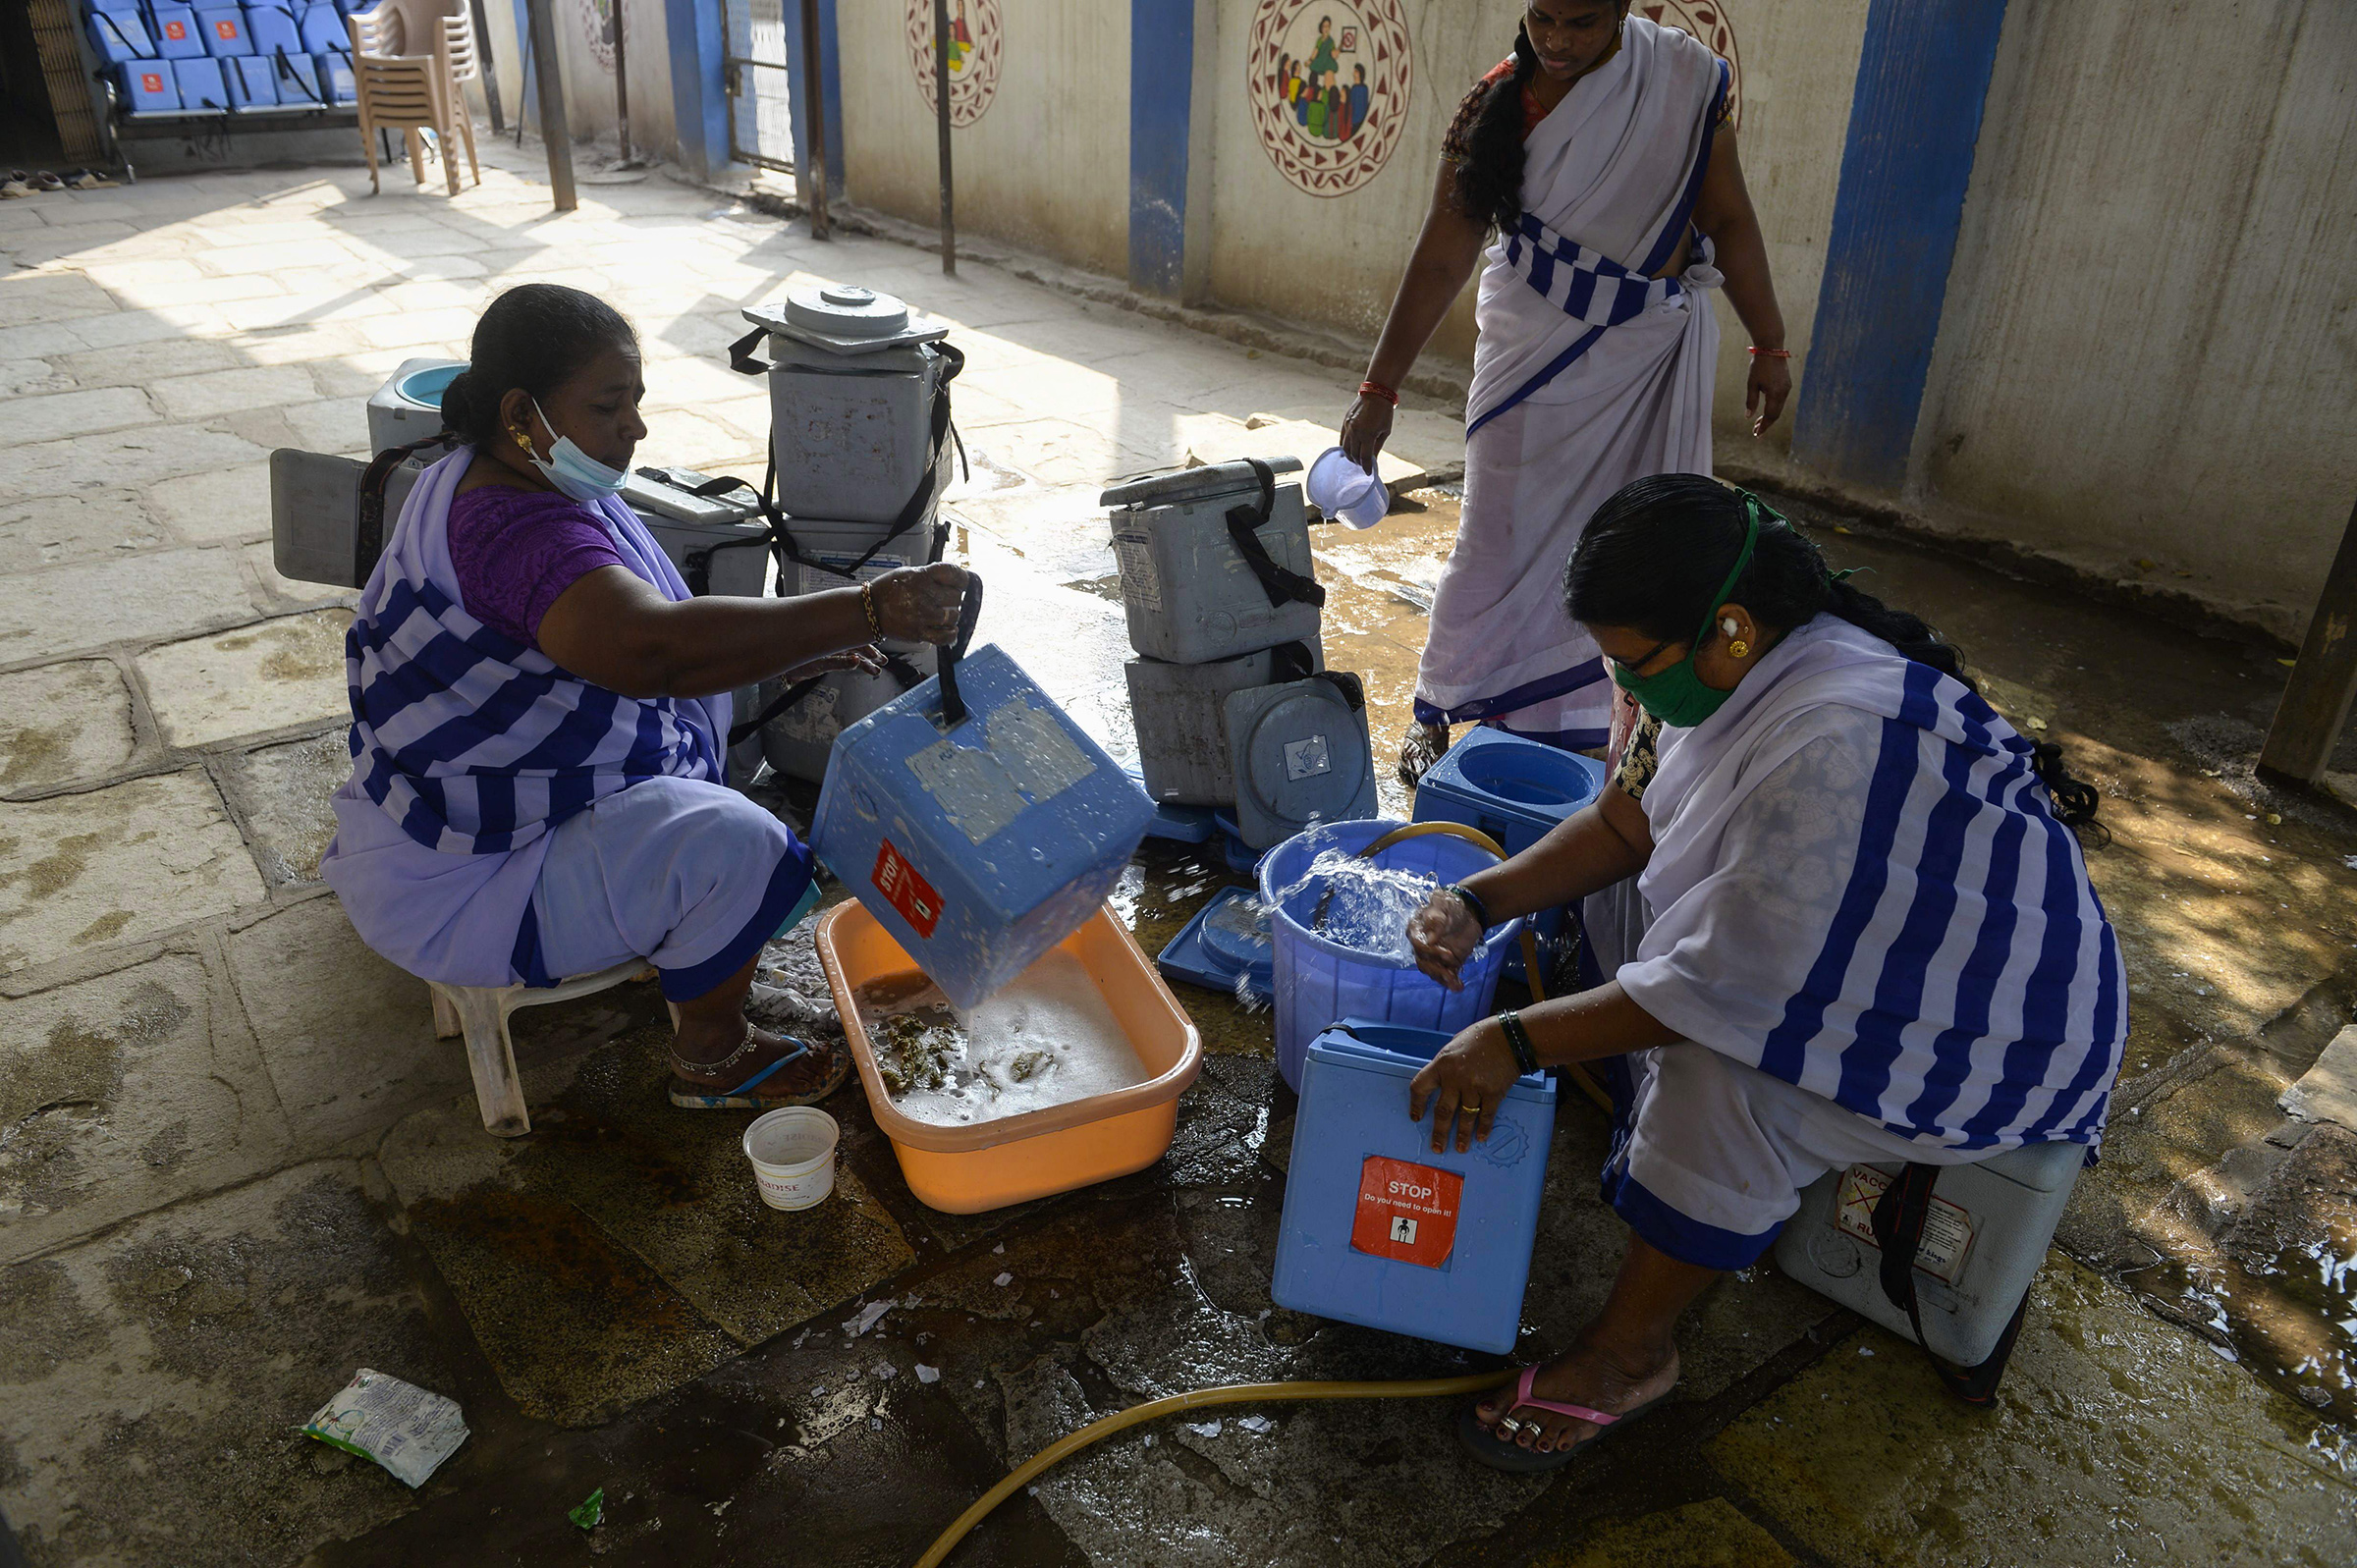 ASHA workers clean carriers for the COVID-19 vaccine at a health center in Hyderabad on Jan. 29, 2021.